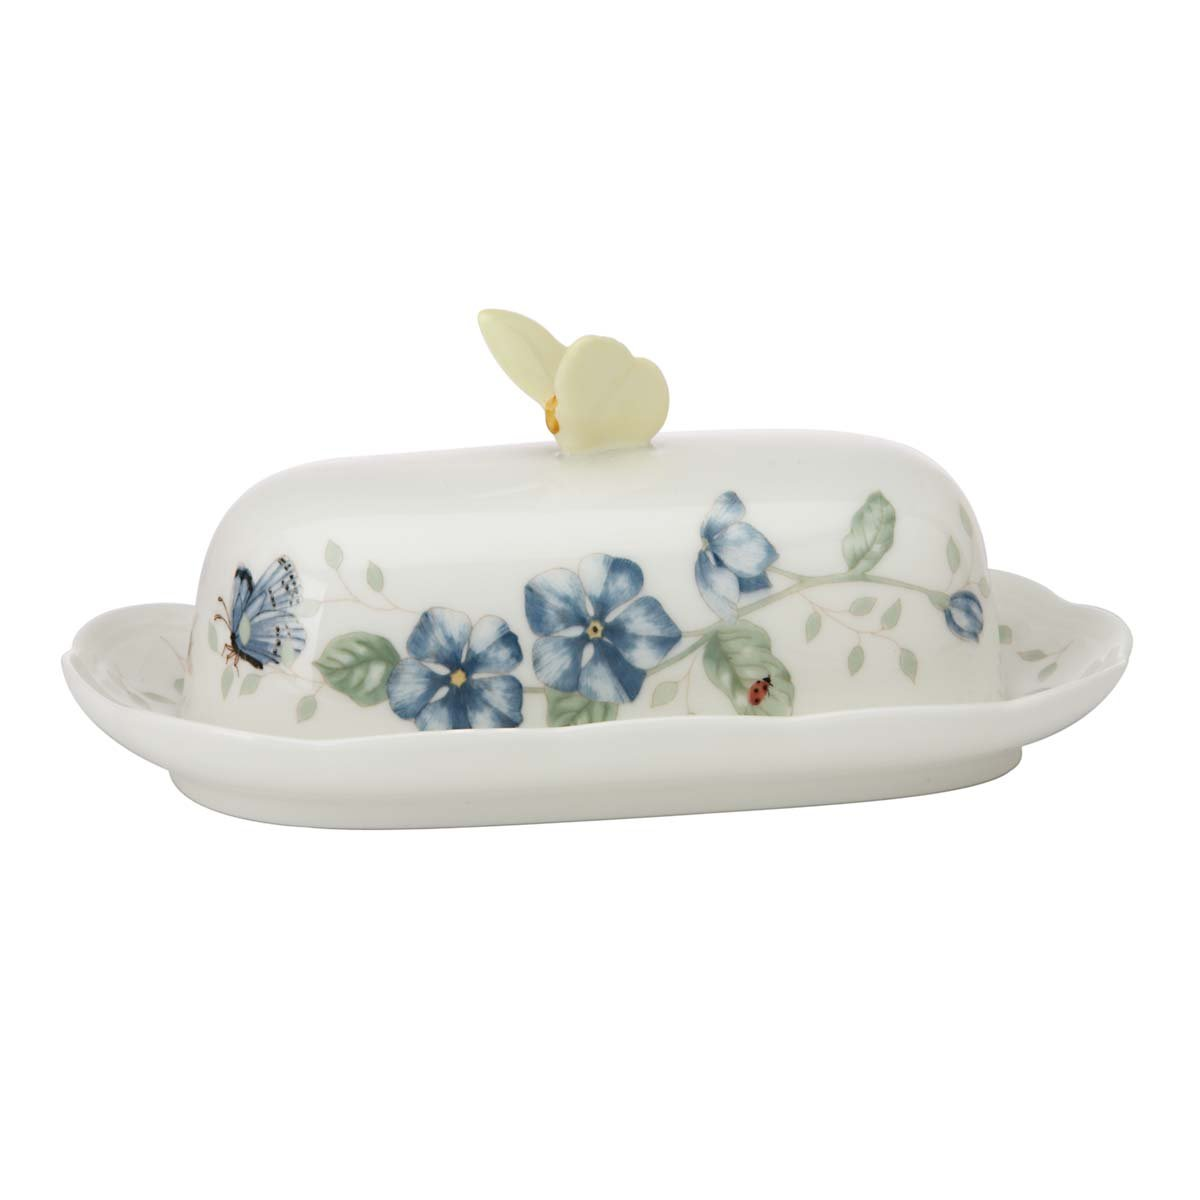 Lenox Butterfly Meadow Oblong Covered Butter Dish